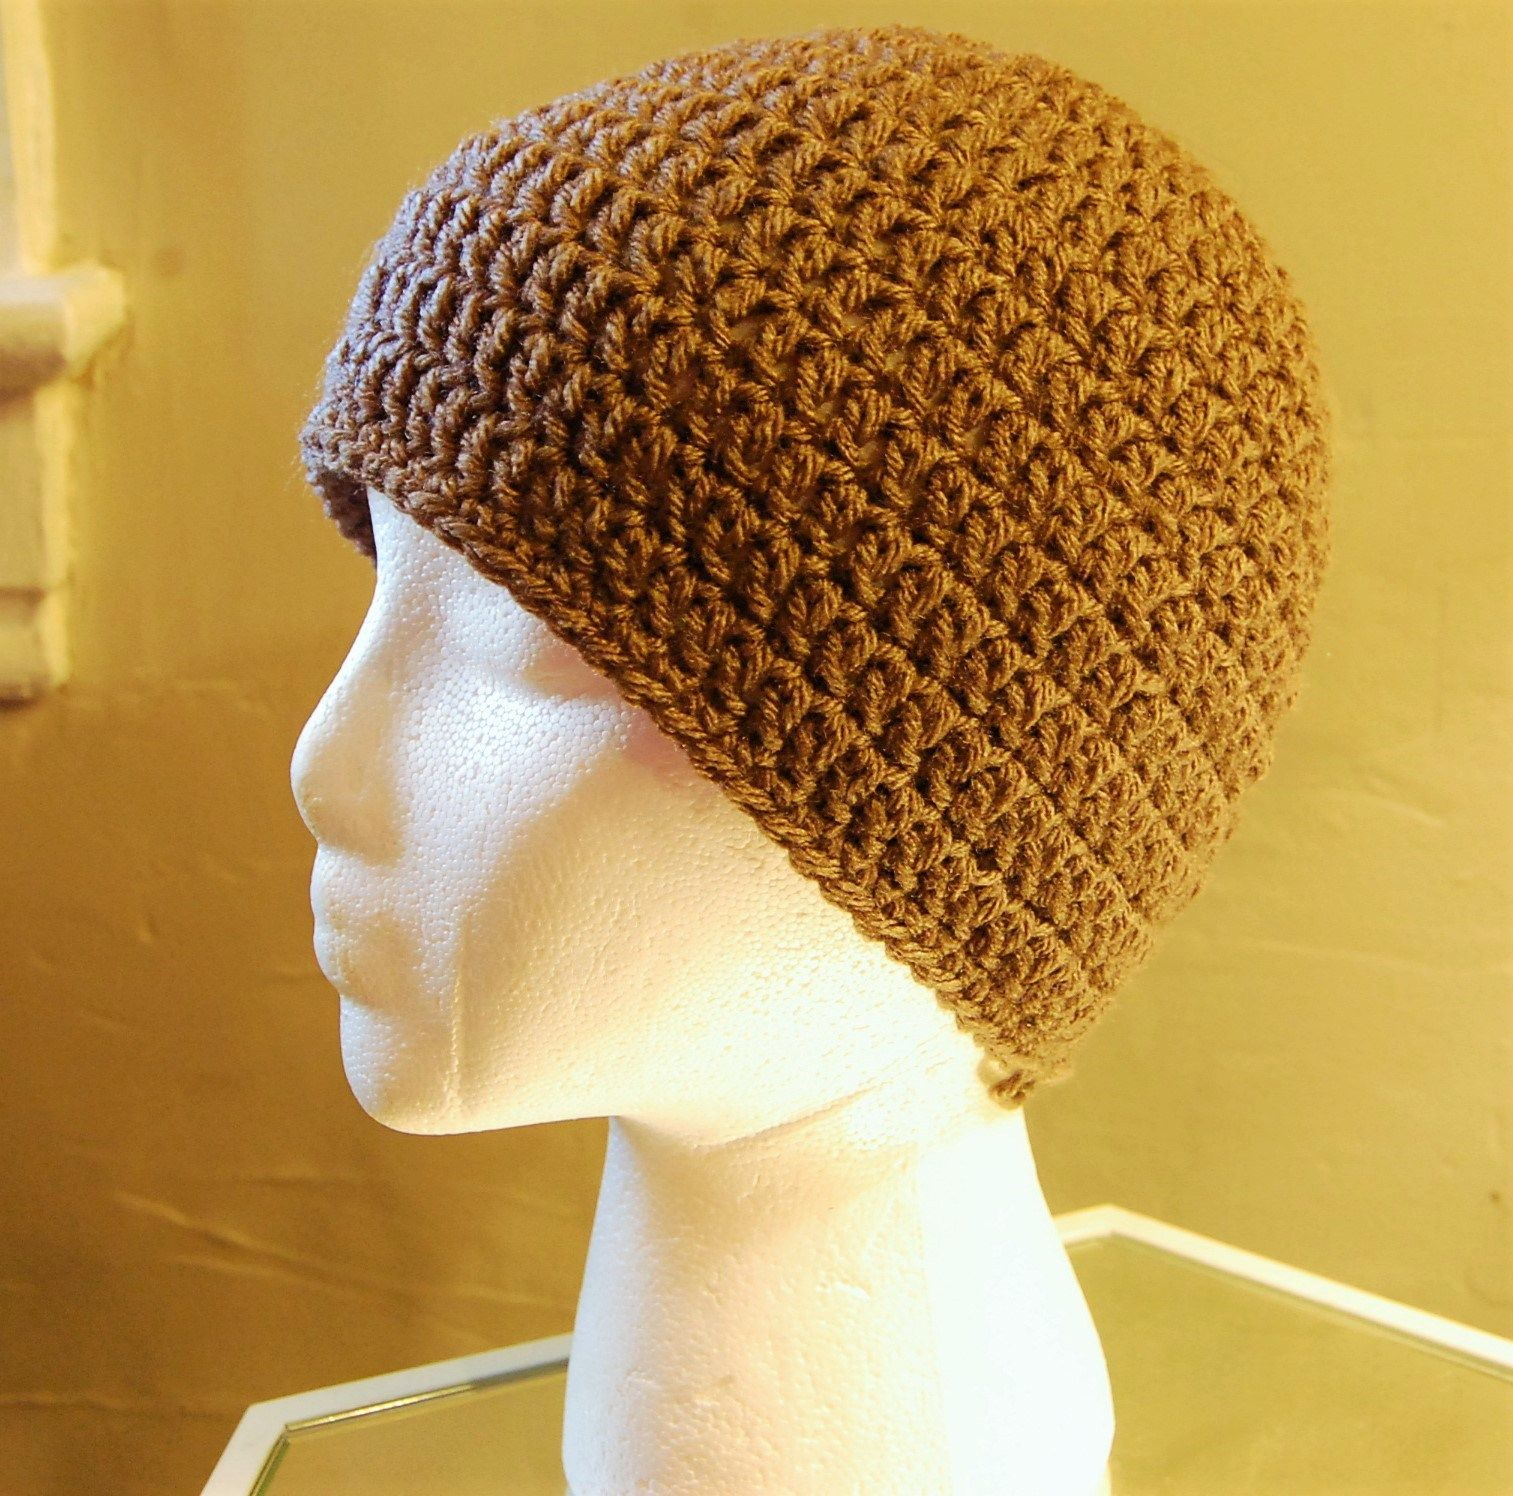 Basic crochet mens hat pattern by jjcrochet love that its free basic crochet mens hat pattern by jjcrochet love that its free bankloansurffo Choice Image